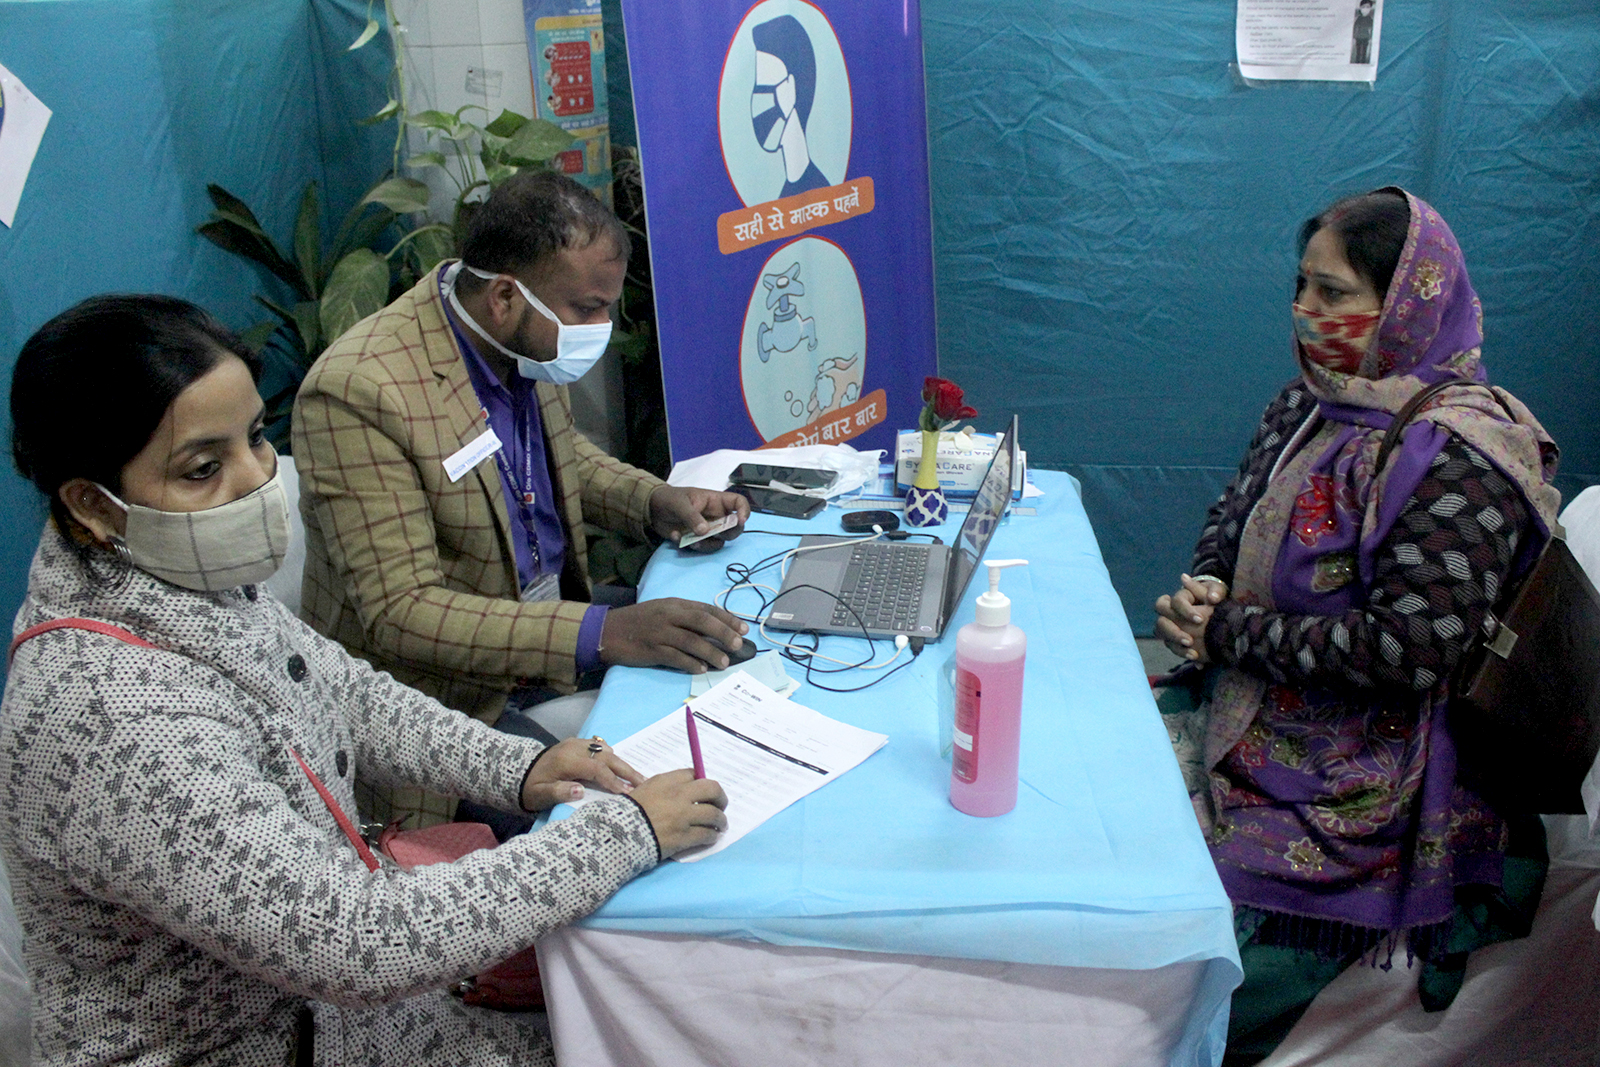 A vaccination officer registers a volunteer during a mock drill for Covid-19 vaccine delivery at a healthcare center in New Delhi, India on January 2.